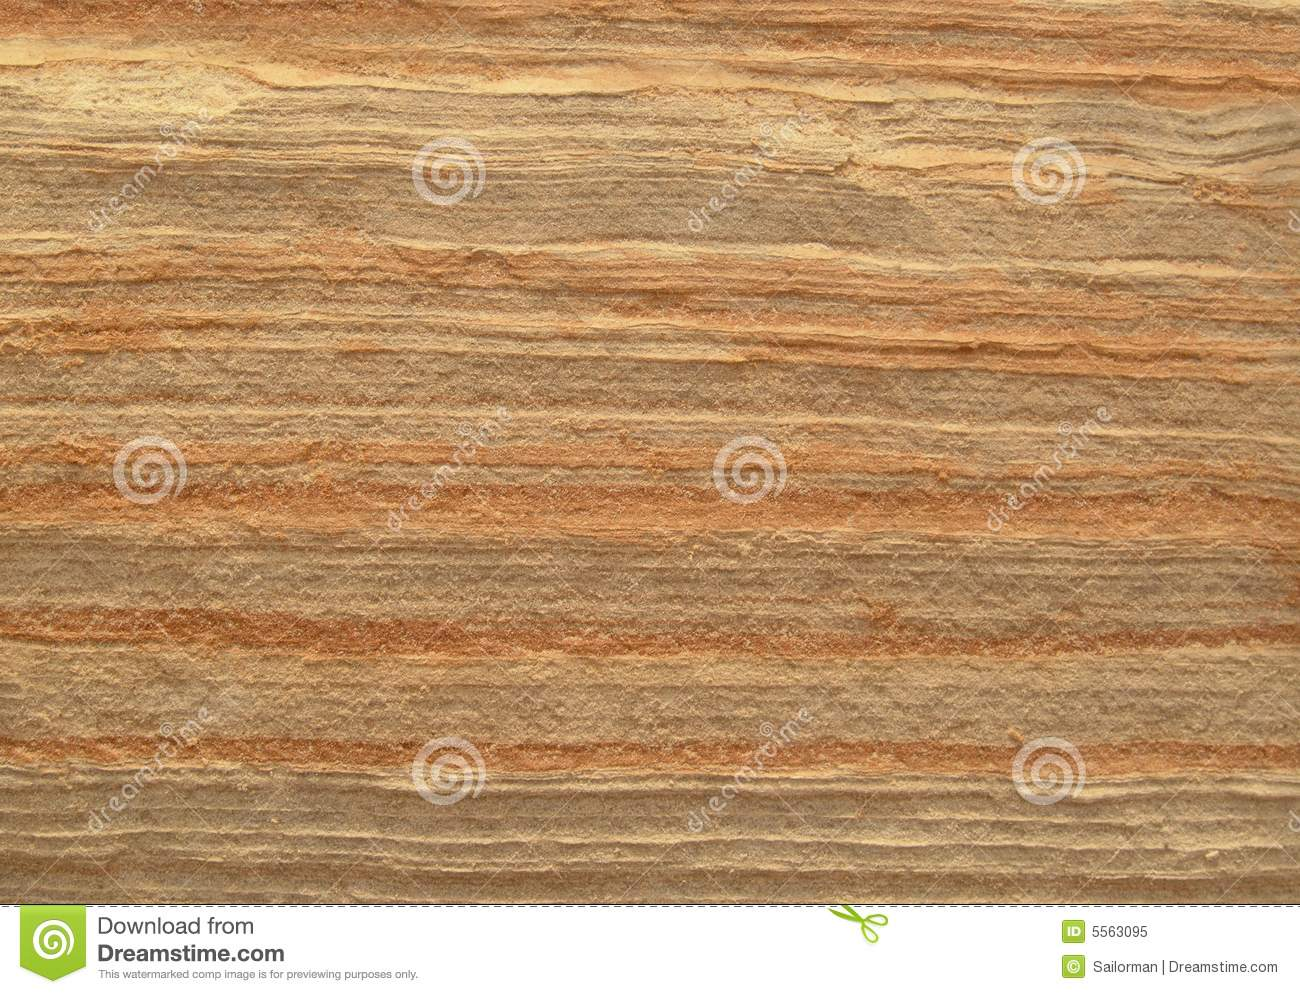 Layered Sandstone Texture. Royalty Free Stock Photo.